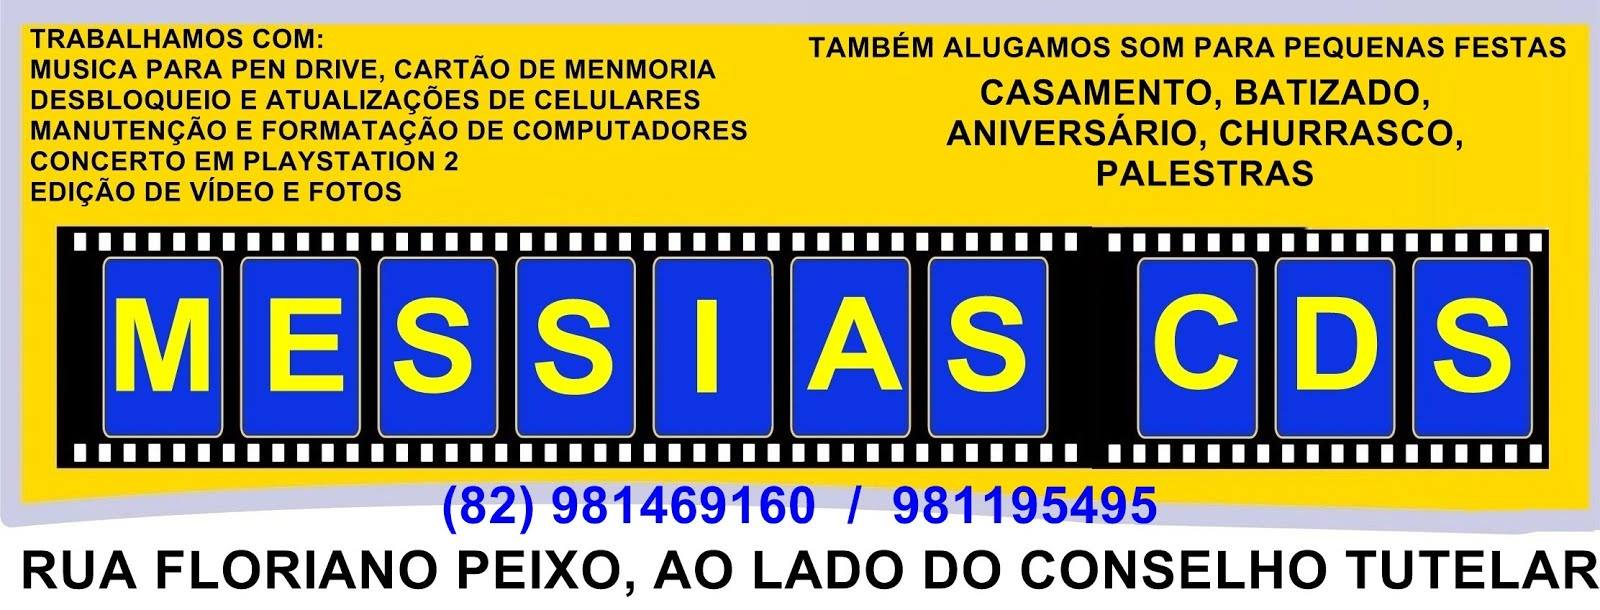 MESSIAS CDS